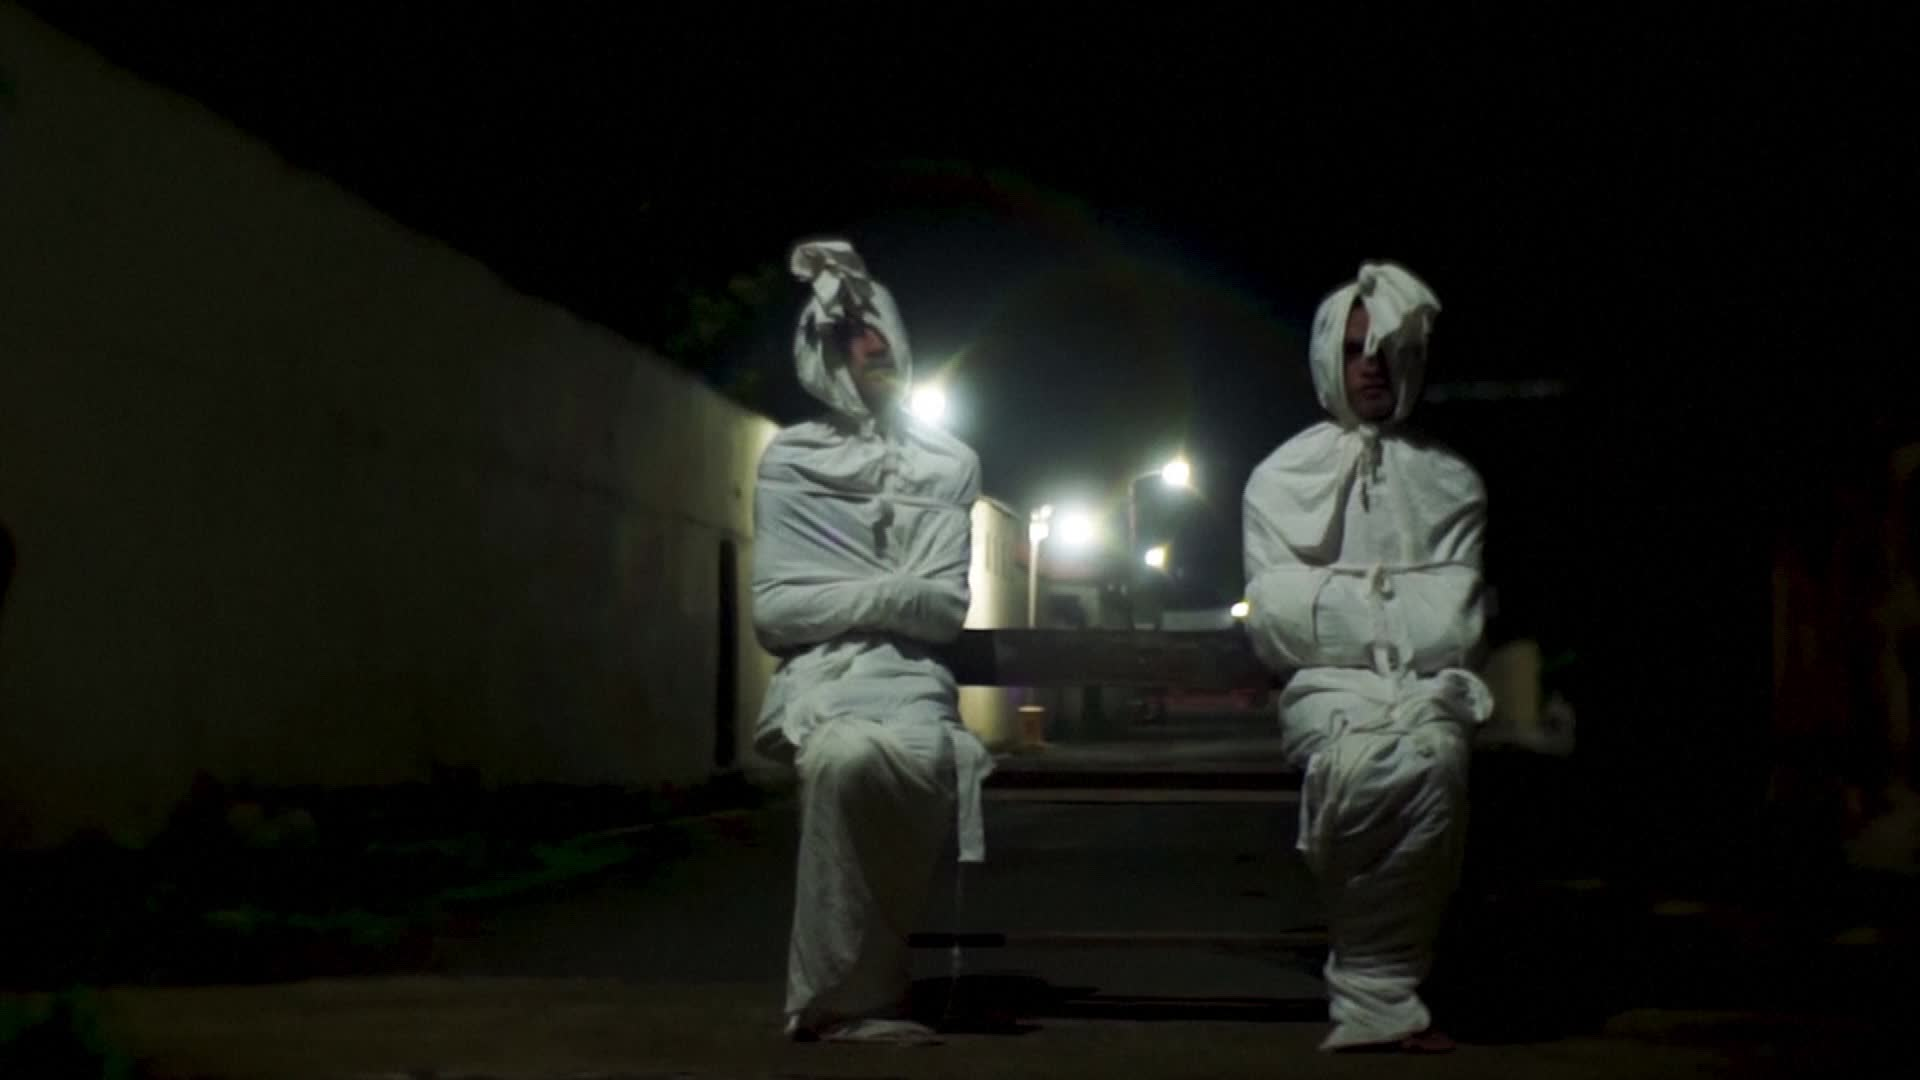 """Deri Setyawan, 25, and Septian Febriyanto, 26, dress up as """"pocong"""" ghosts in an attempt to make people in Kepuh village, in Indonesia's central Java province, stay at home during the coronavirus outbreak. (Reuters)"""